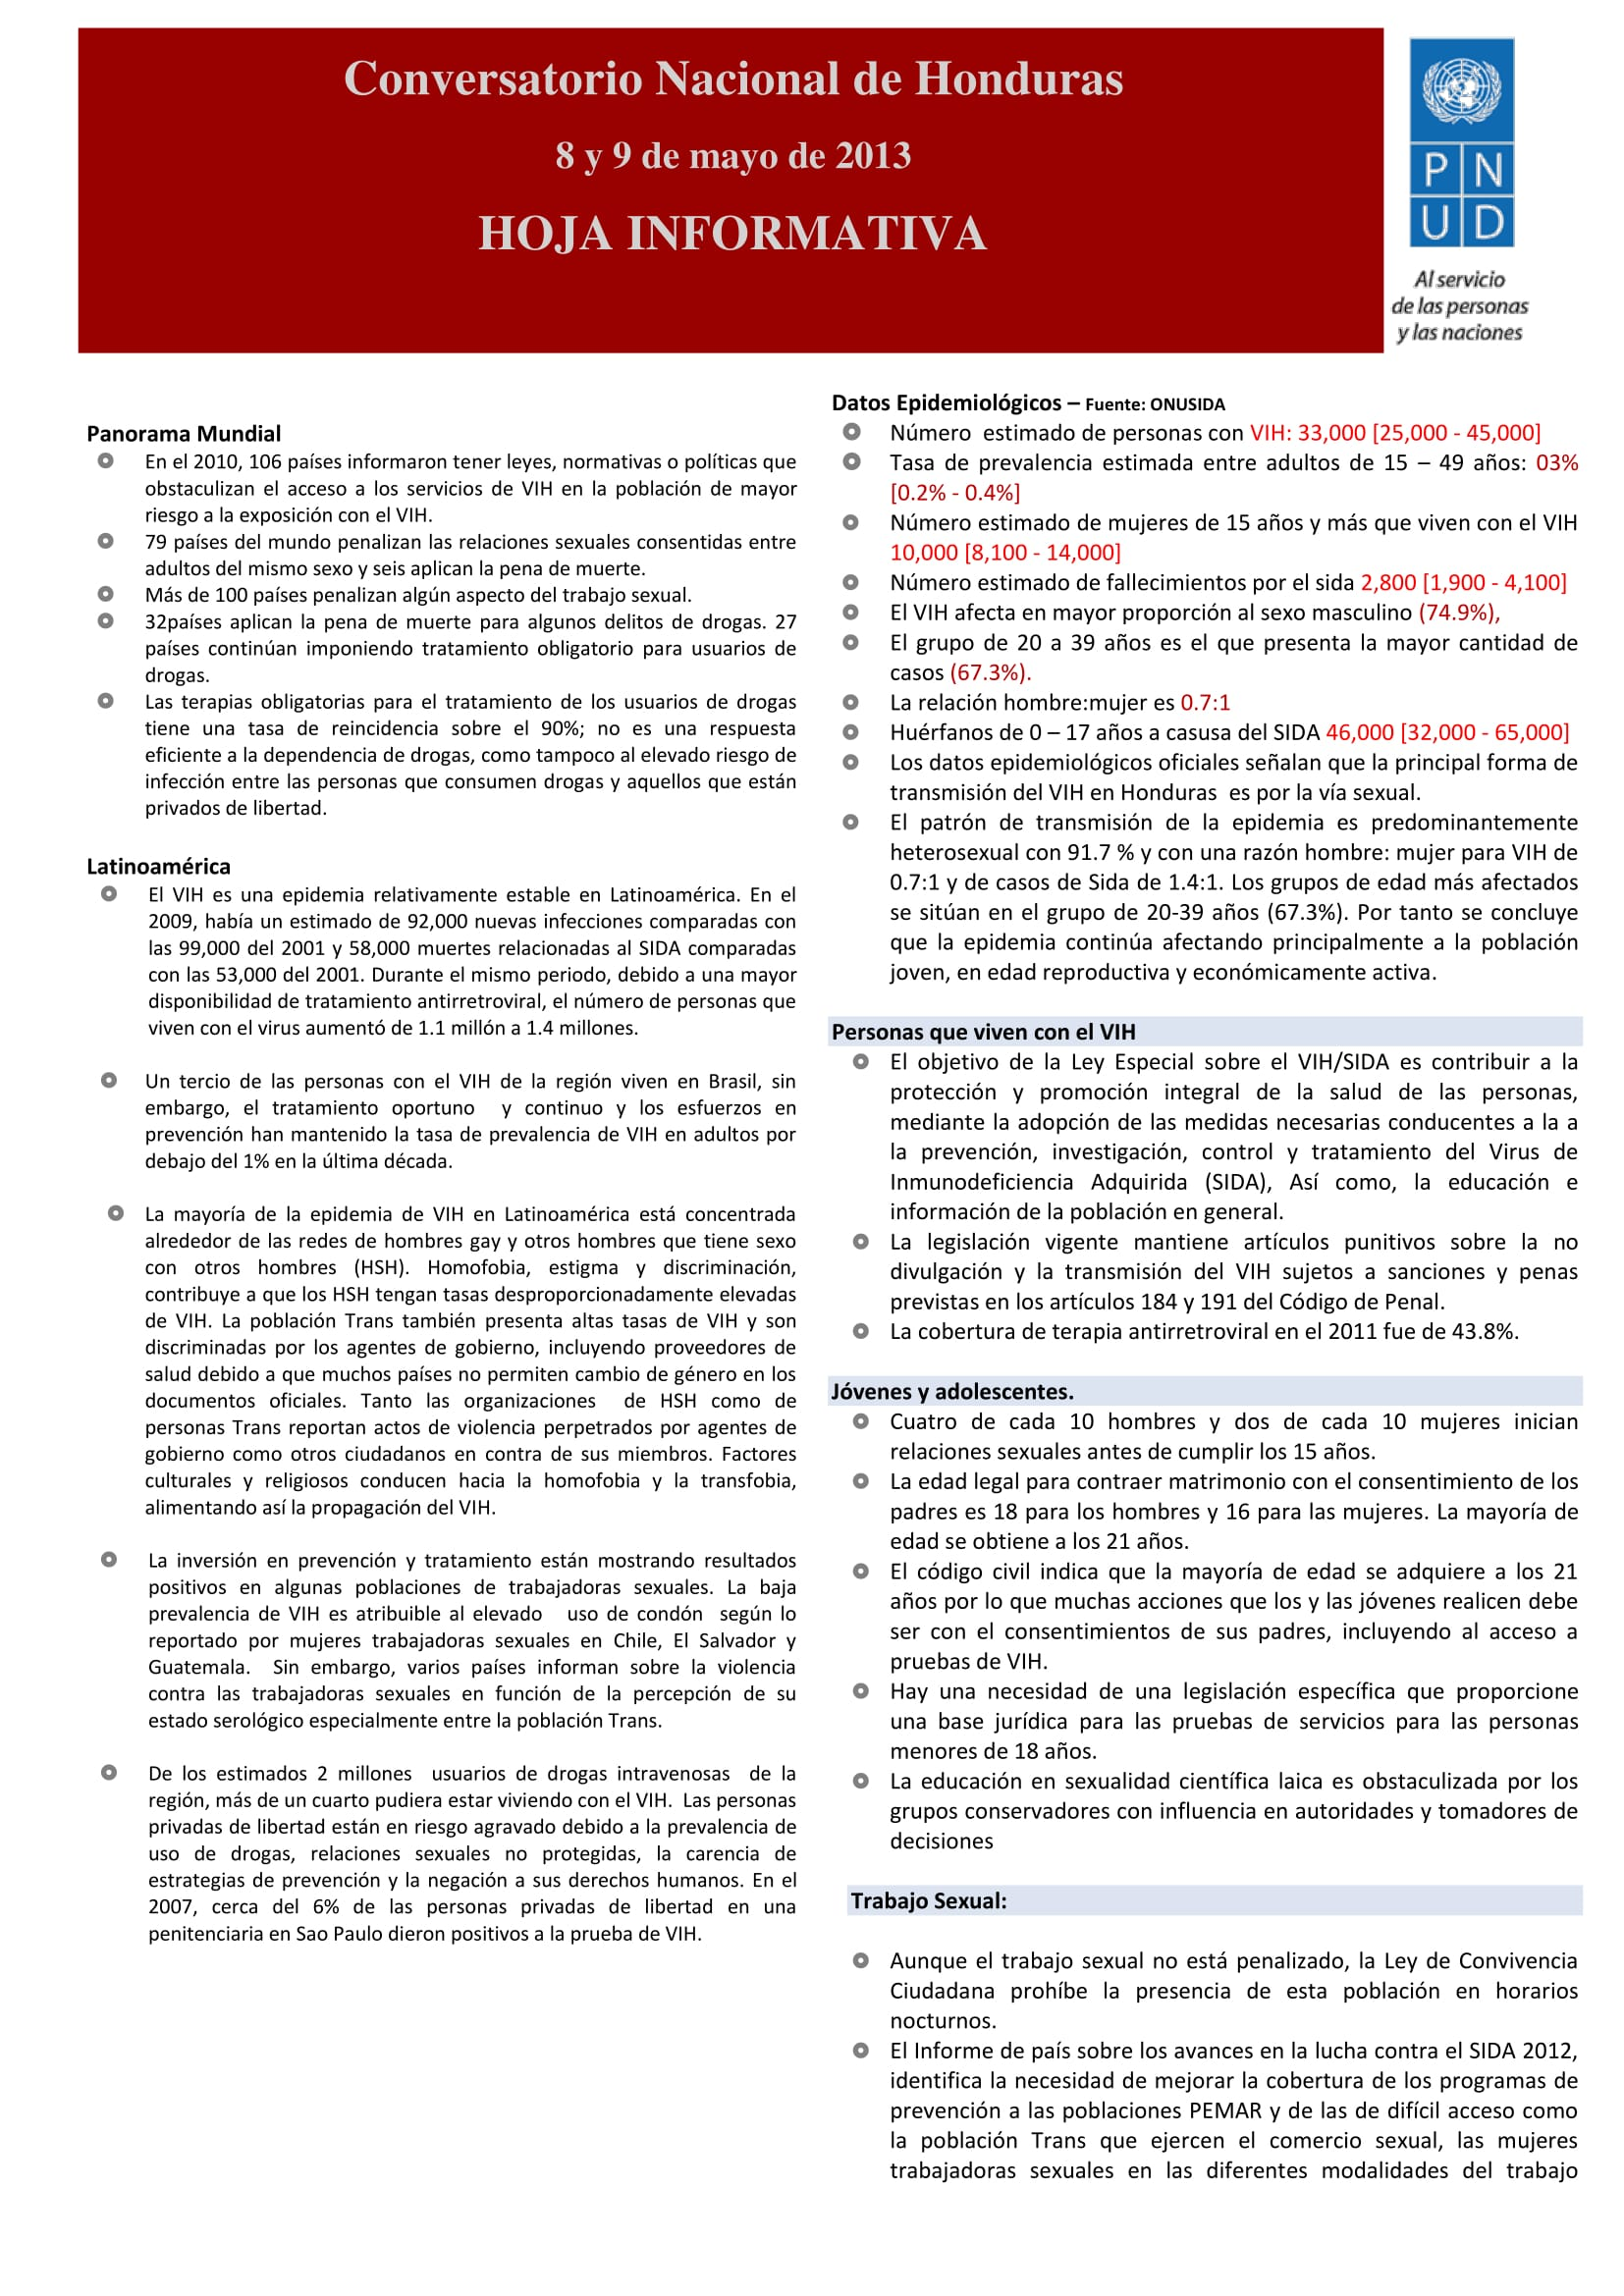 Honduras National Dialogue on HIV and the Law: Information Note